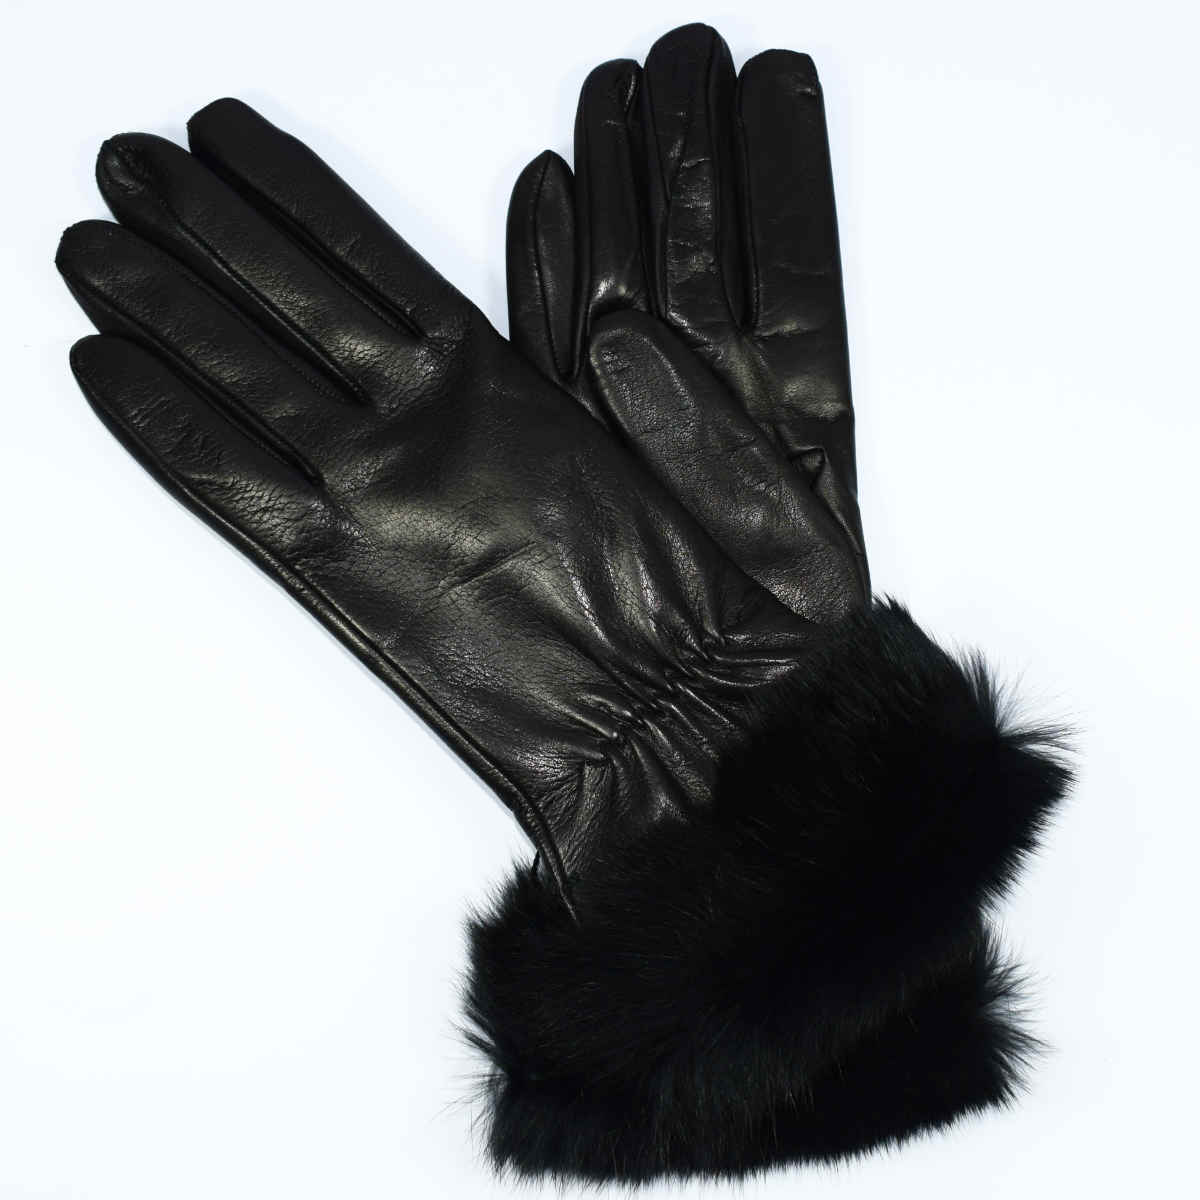 5PELL   WOMAN GLOVES WITH FUR by Bottega Fiorentina